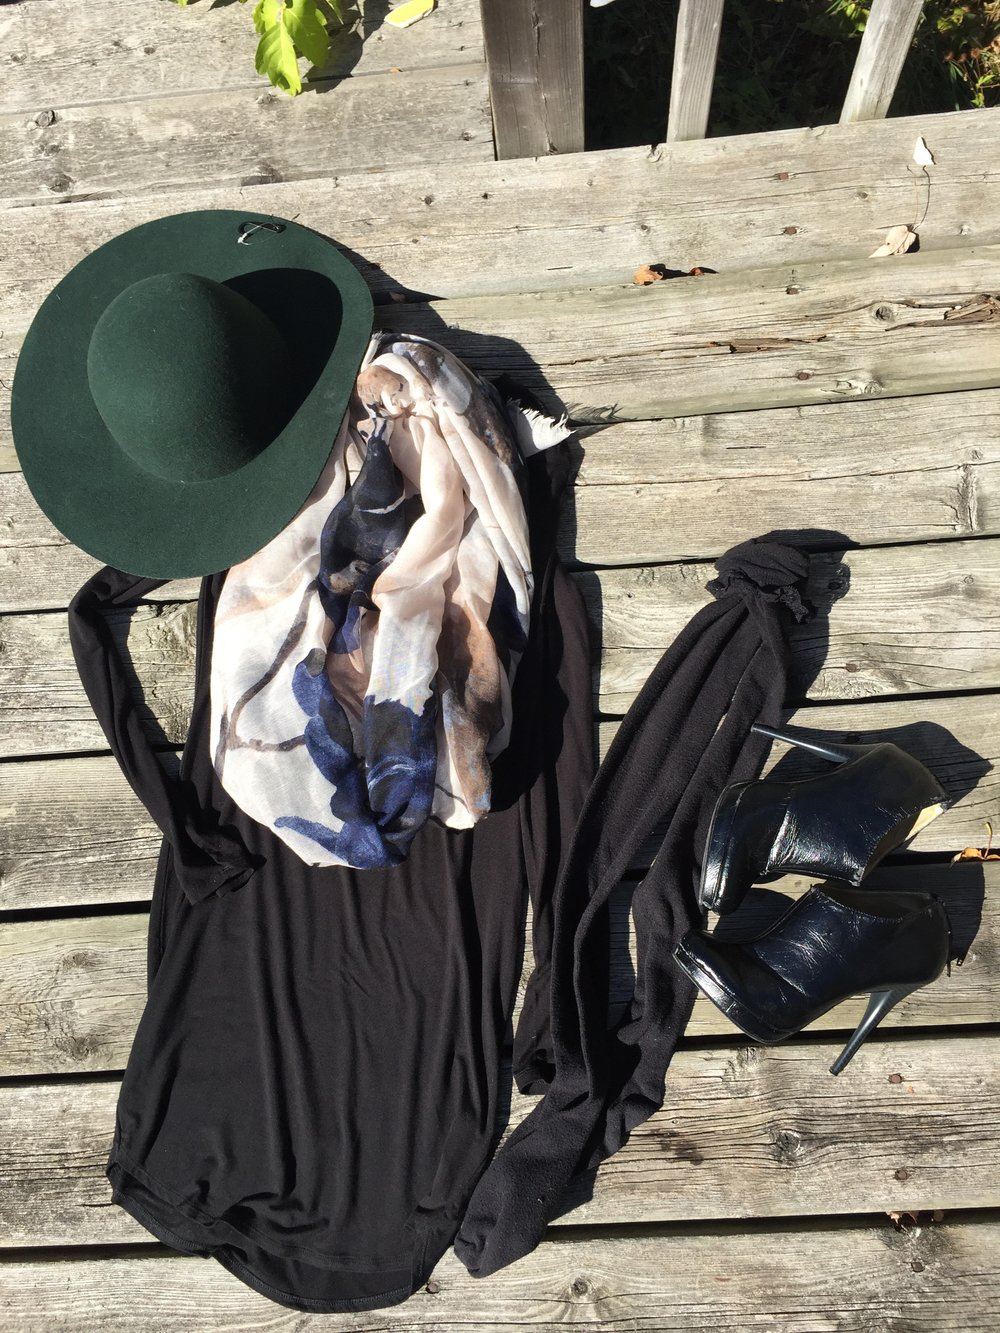 Black Long Sleeve Dress with knee high socks, black booties, a scarf and hunter green floppy hat